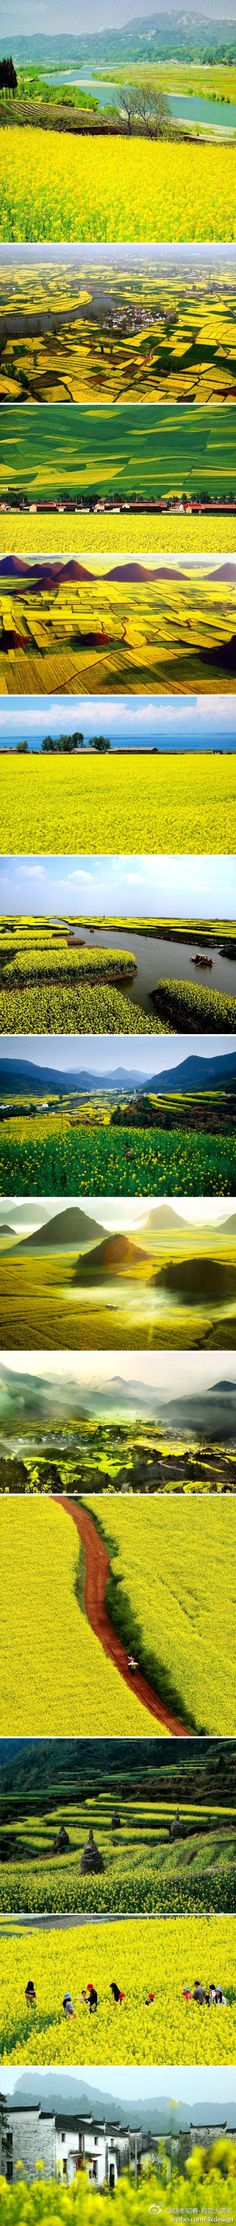 terraced fields in China Luscious lime